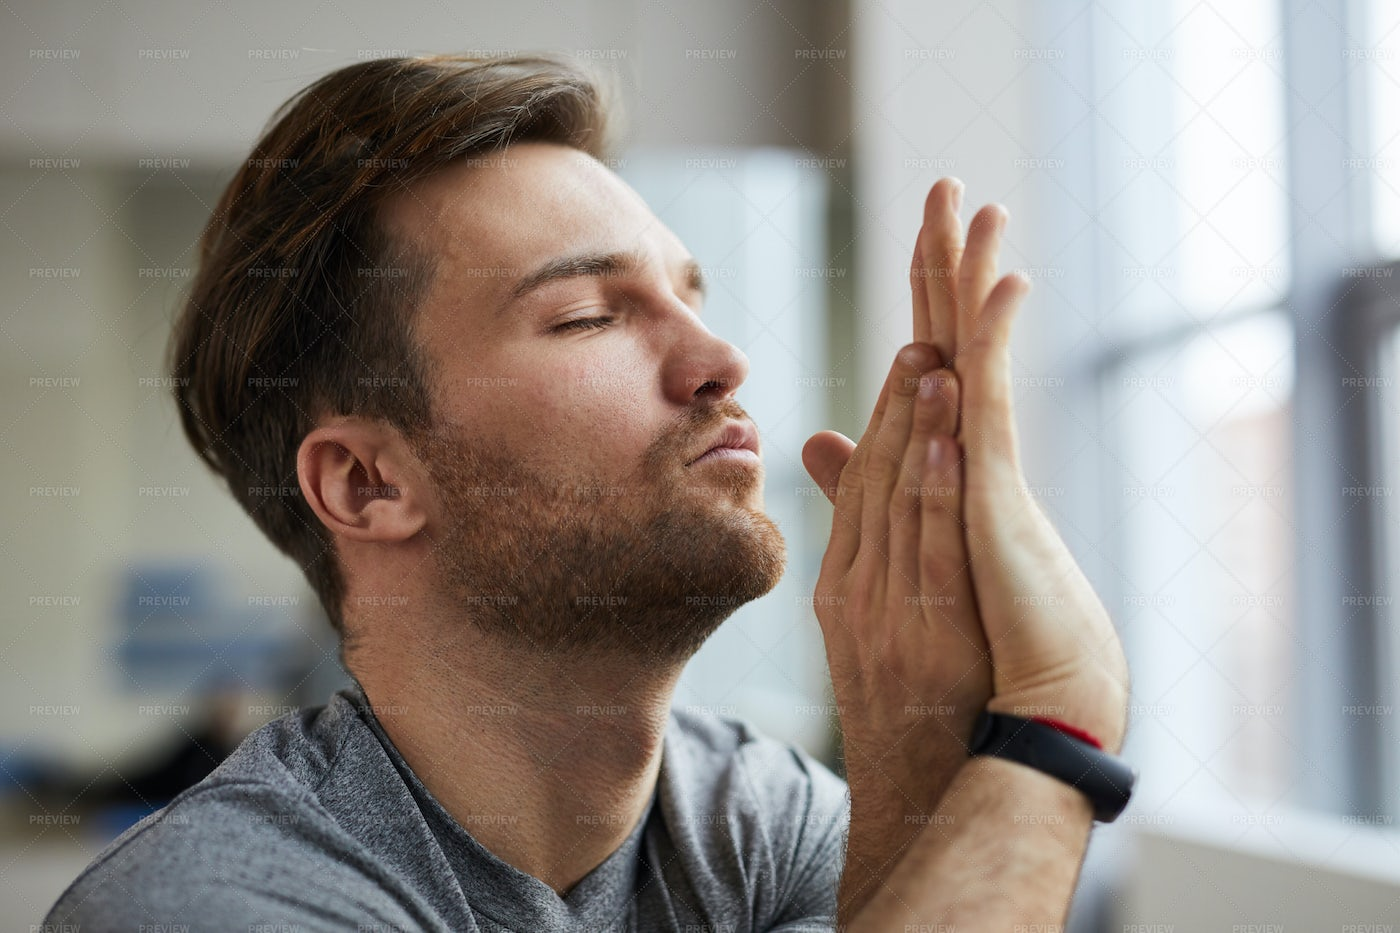 Concentrated Man With Twisted Arms: Stock Photos